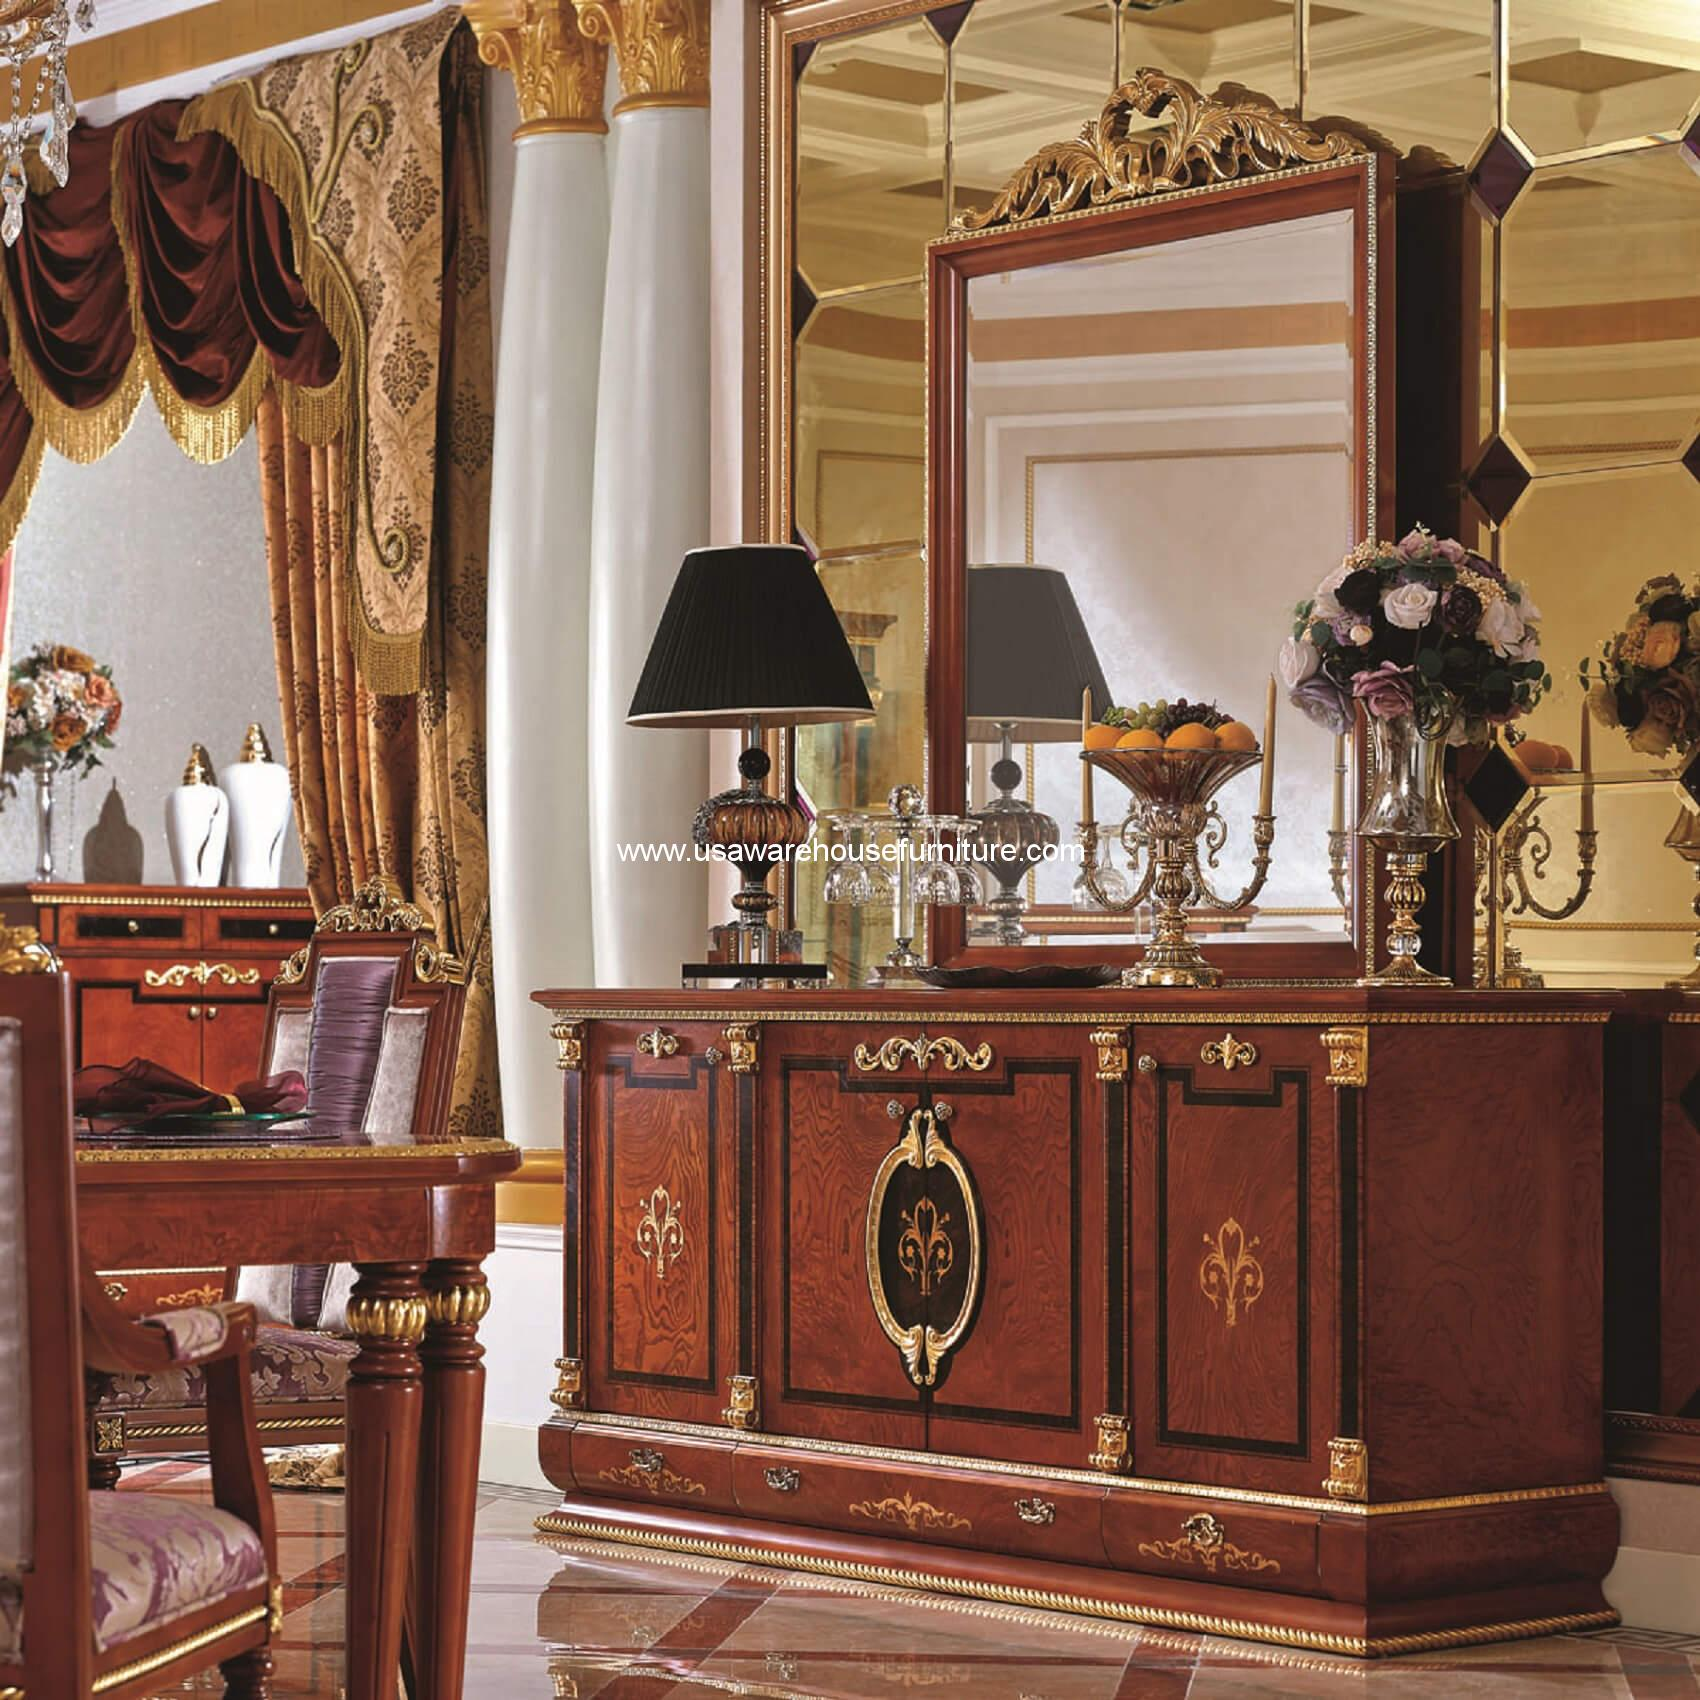 Empire European Luxury Buffet Cabinet - USA Warehouse Furniture